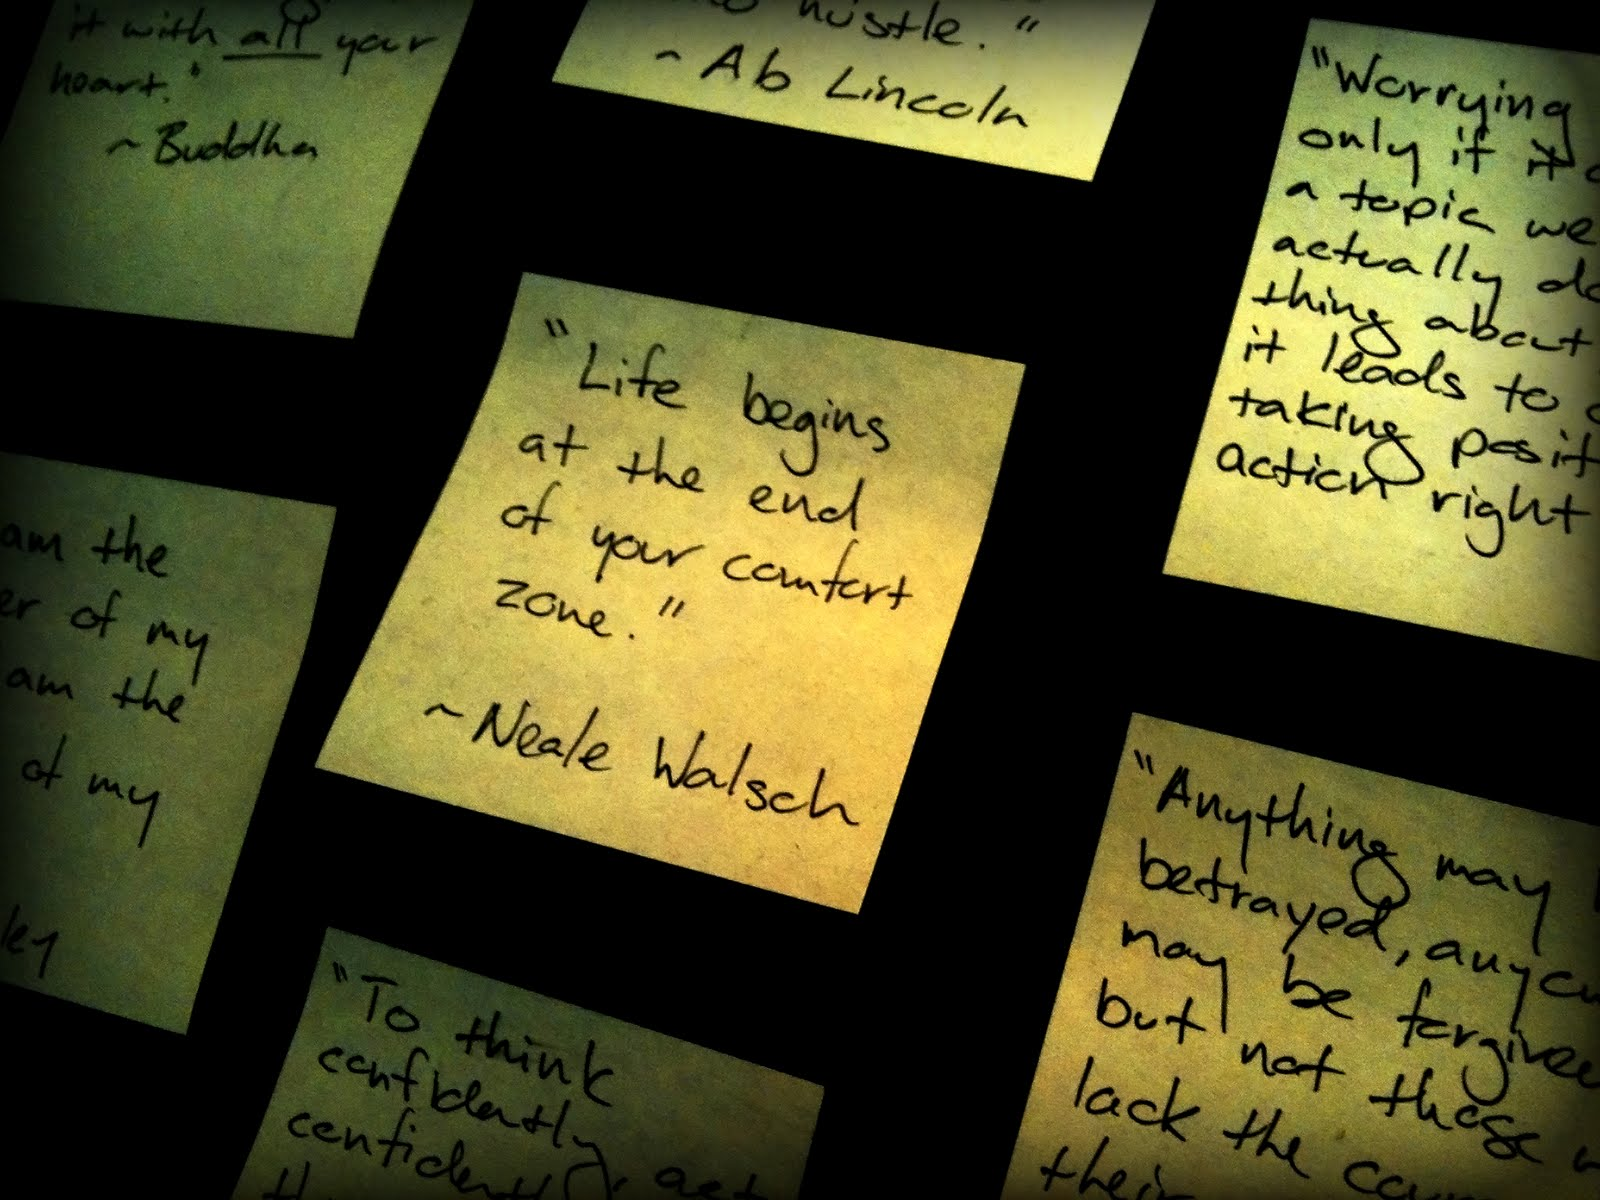 Neale Donald Walsch's quote #2